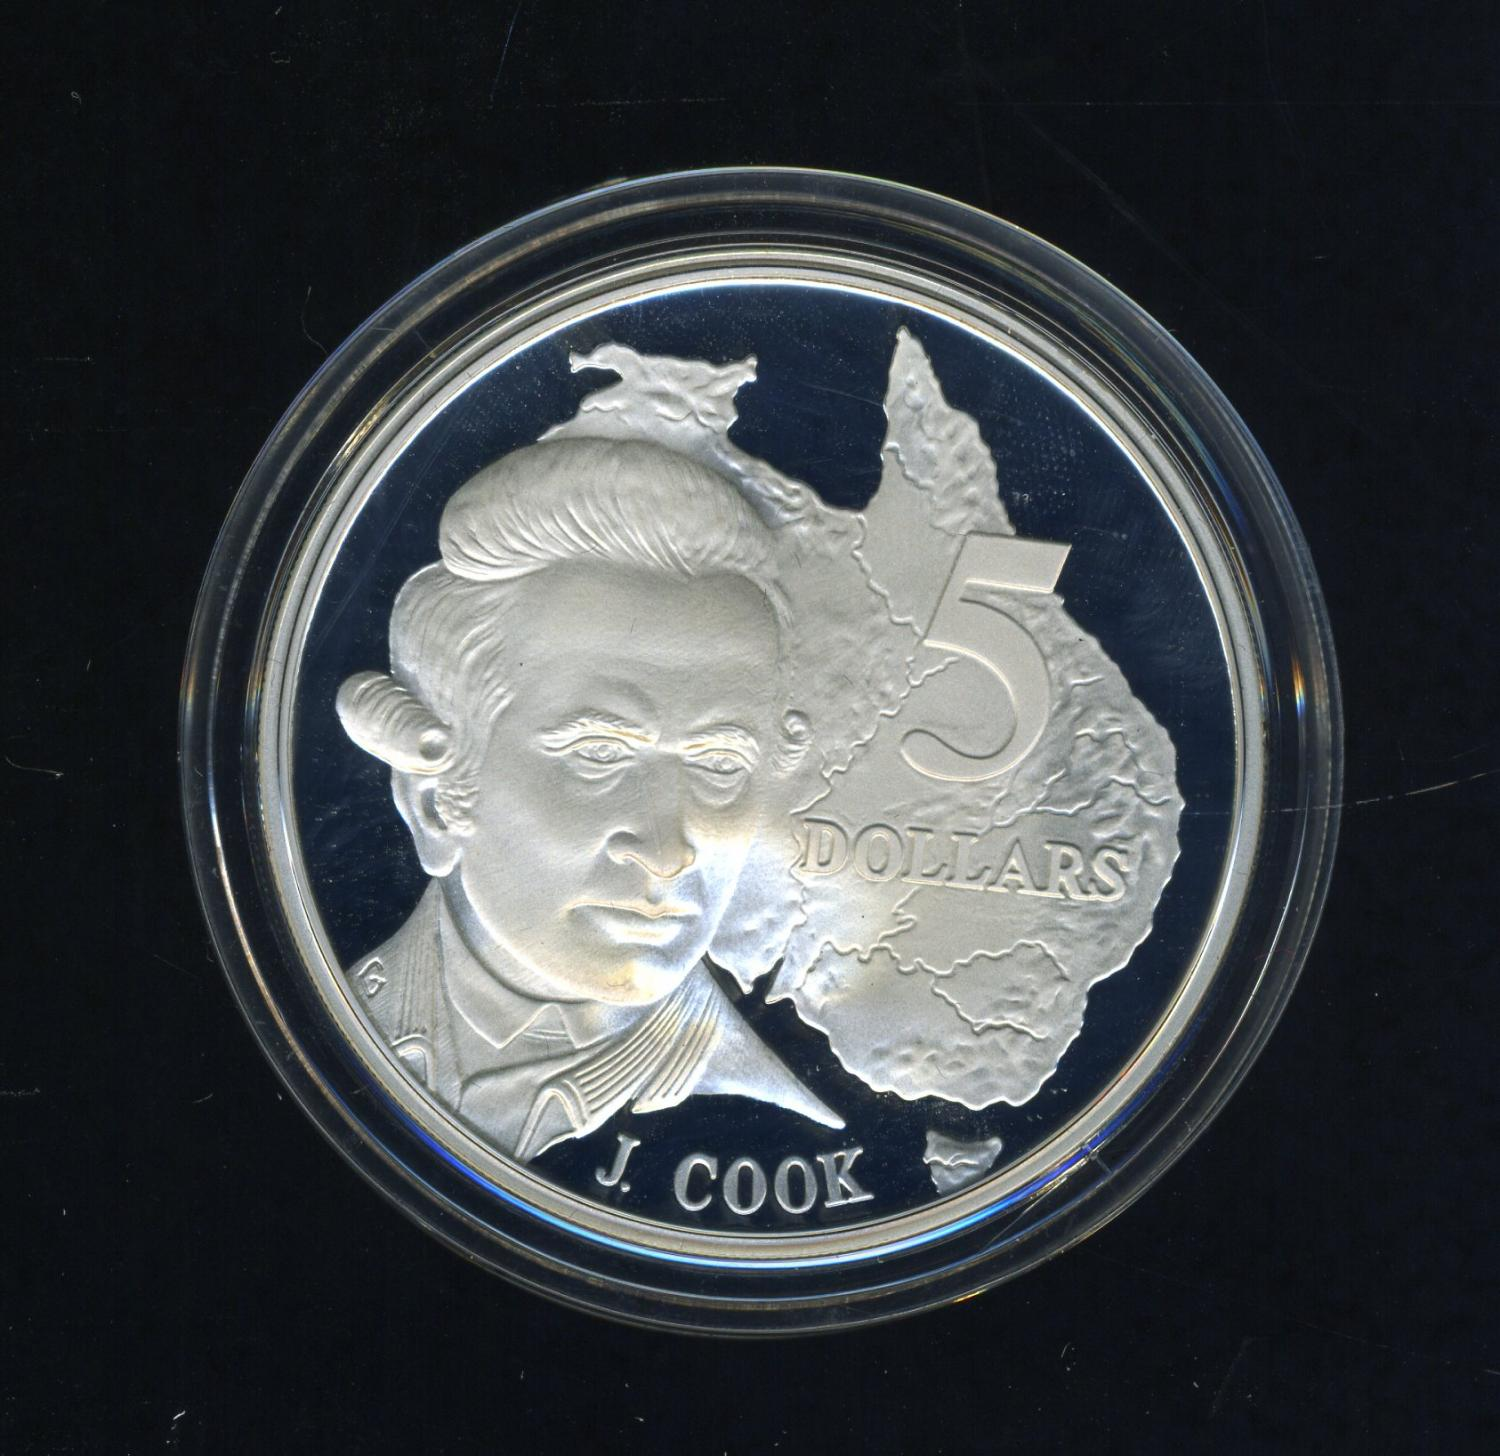 Thumbnail for 1993 Australian $5 Silver Coin from Masterpieces in Silver Set - James Cook.  The Coin is Sterling Silver and contains over 1oz of Pure Silver.